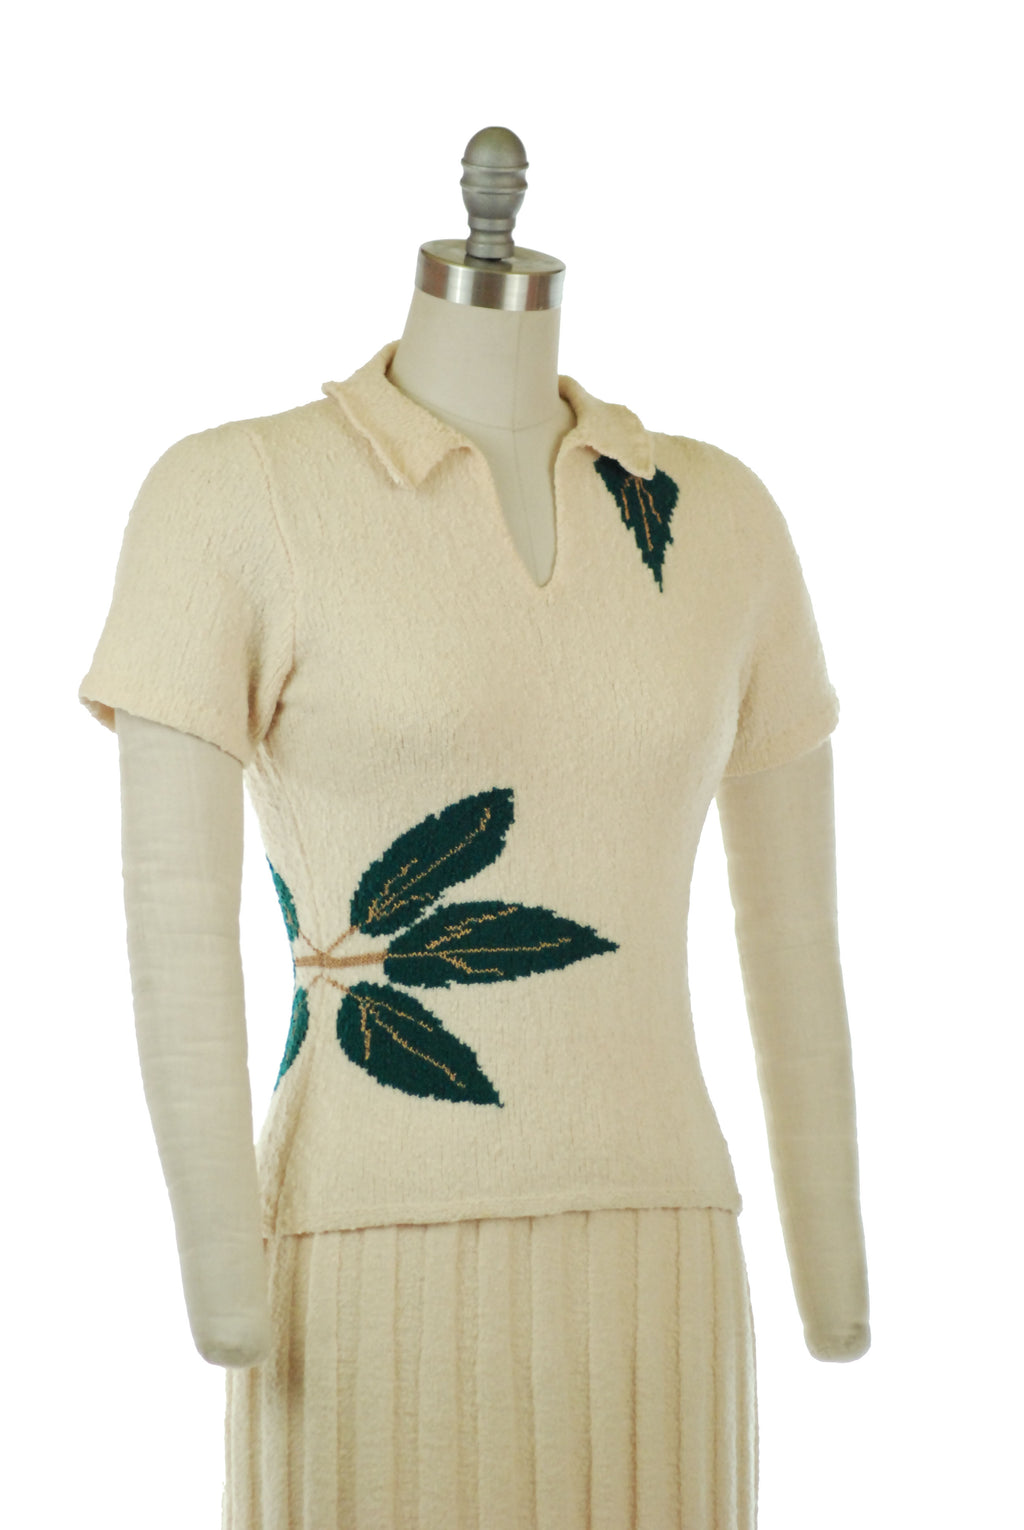 Fantastic 1950s Ivory Boucle Sweater Set with Knitted Leaf Motif